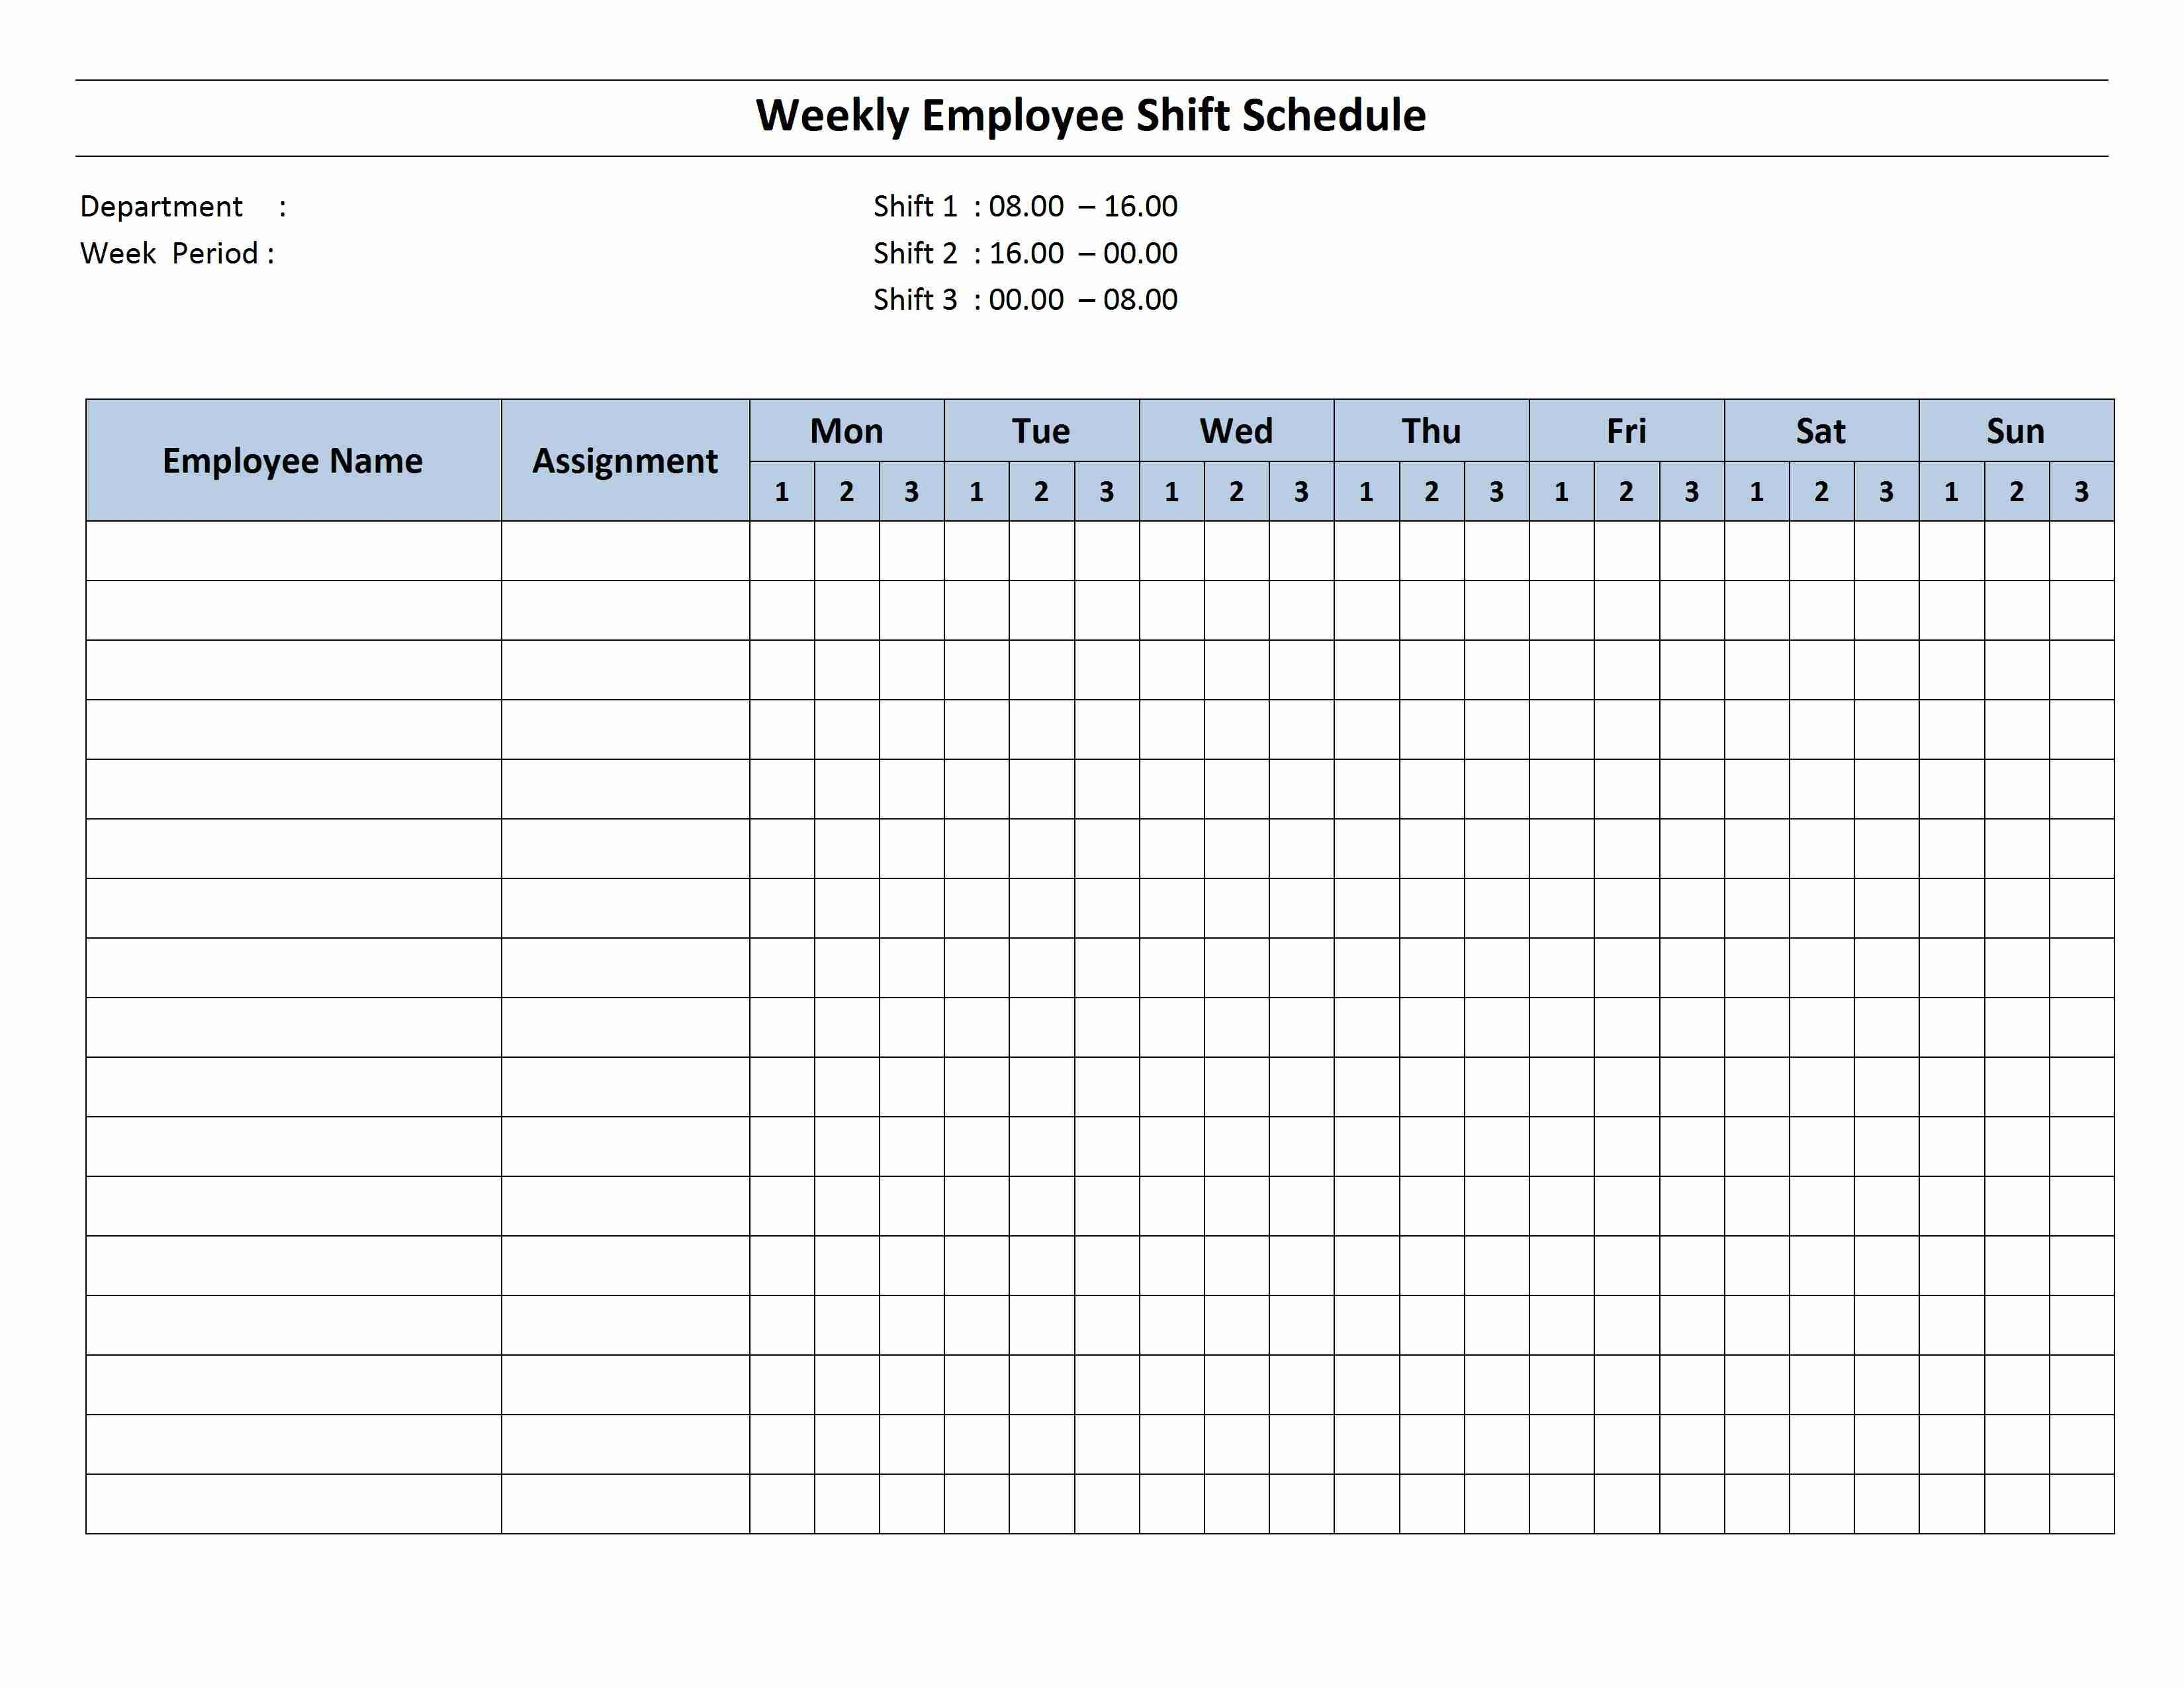 Weekly 8 Hour Shift Schedule (With Images) | Cleaning Eight Week Calendar Template